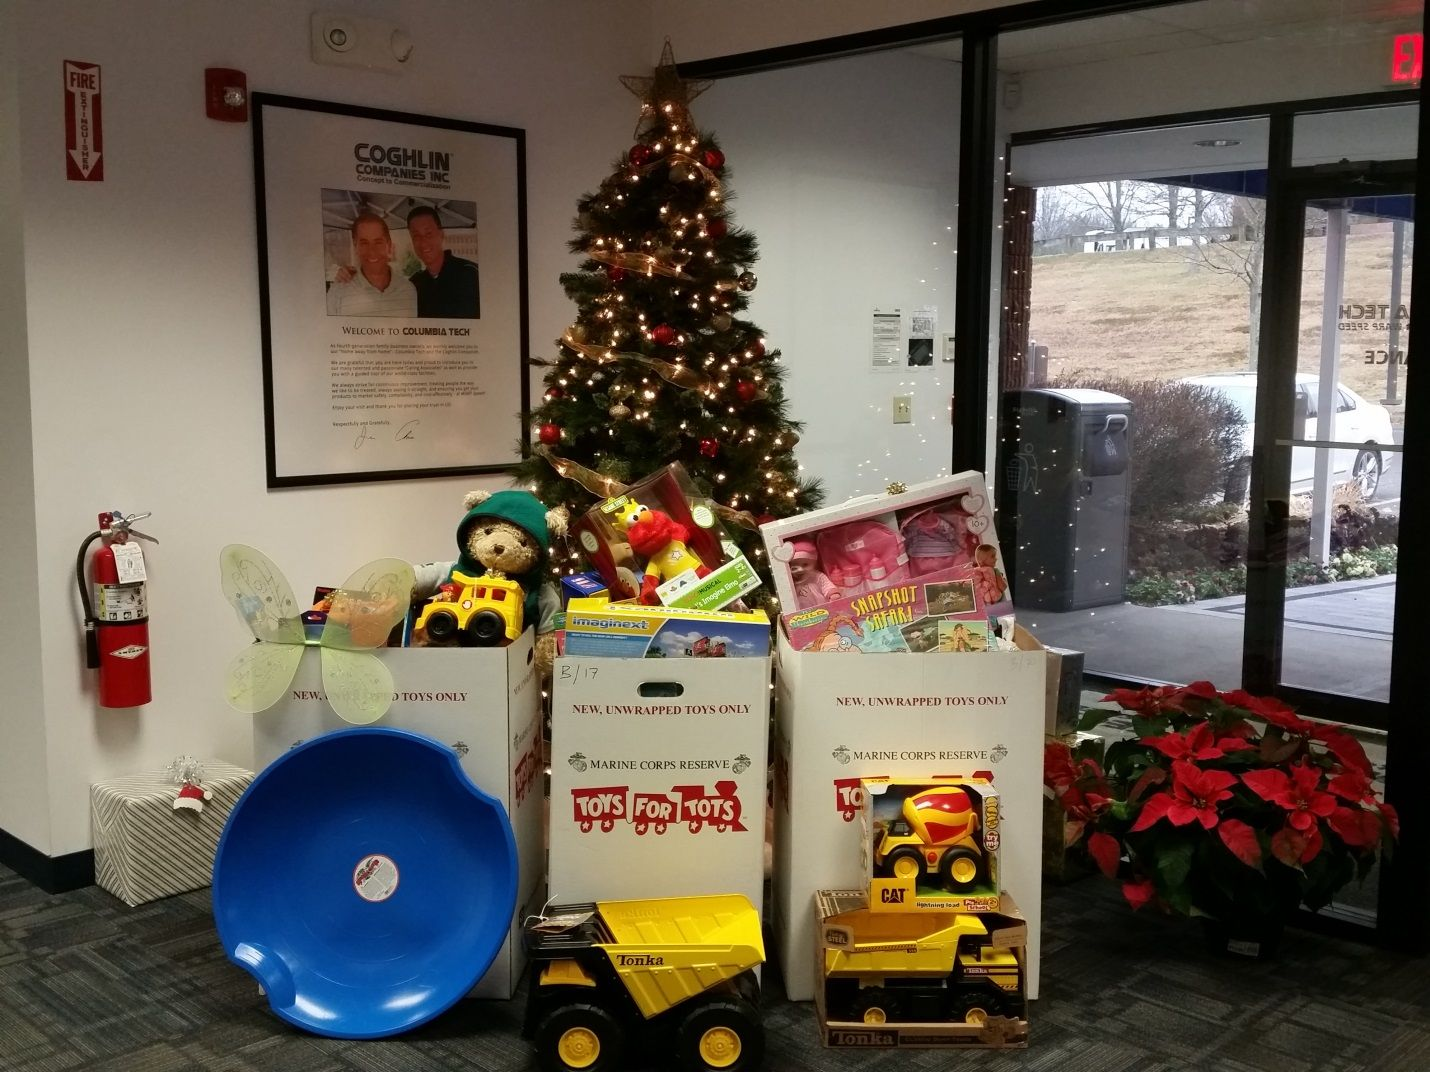 Toys for tots images  THE COGHLIN COMPANIES DONATE TO TOYS FOR TOTS Every year at